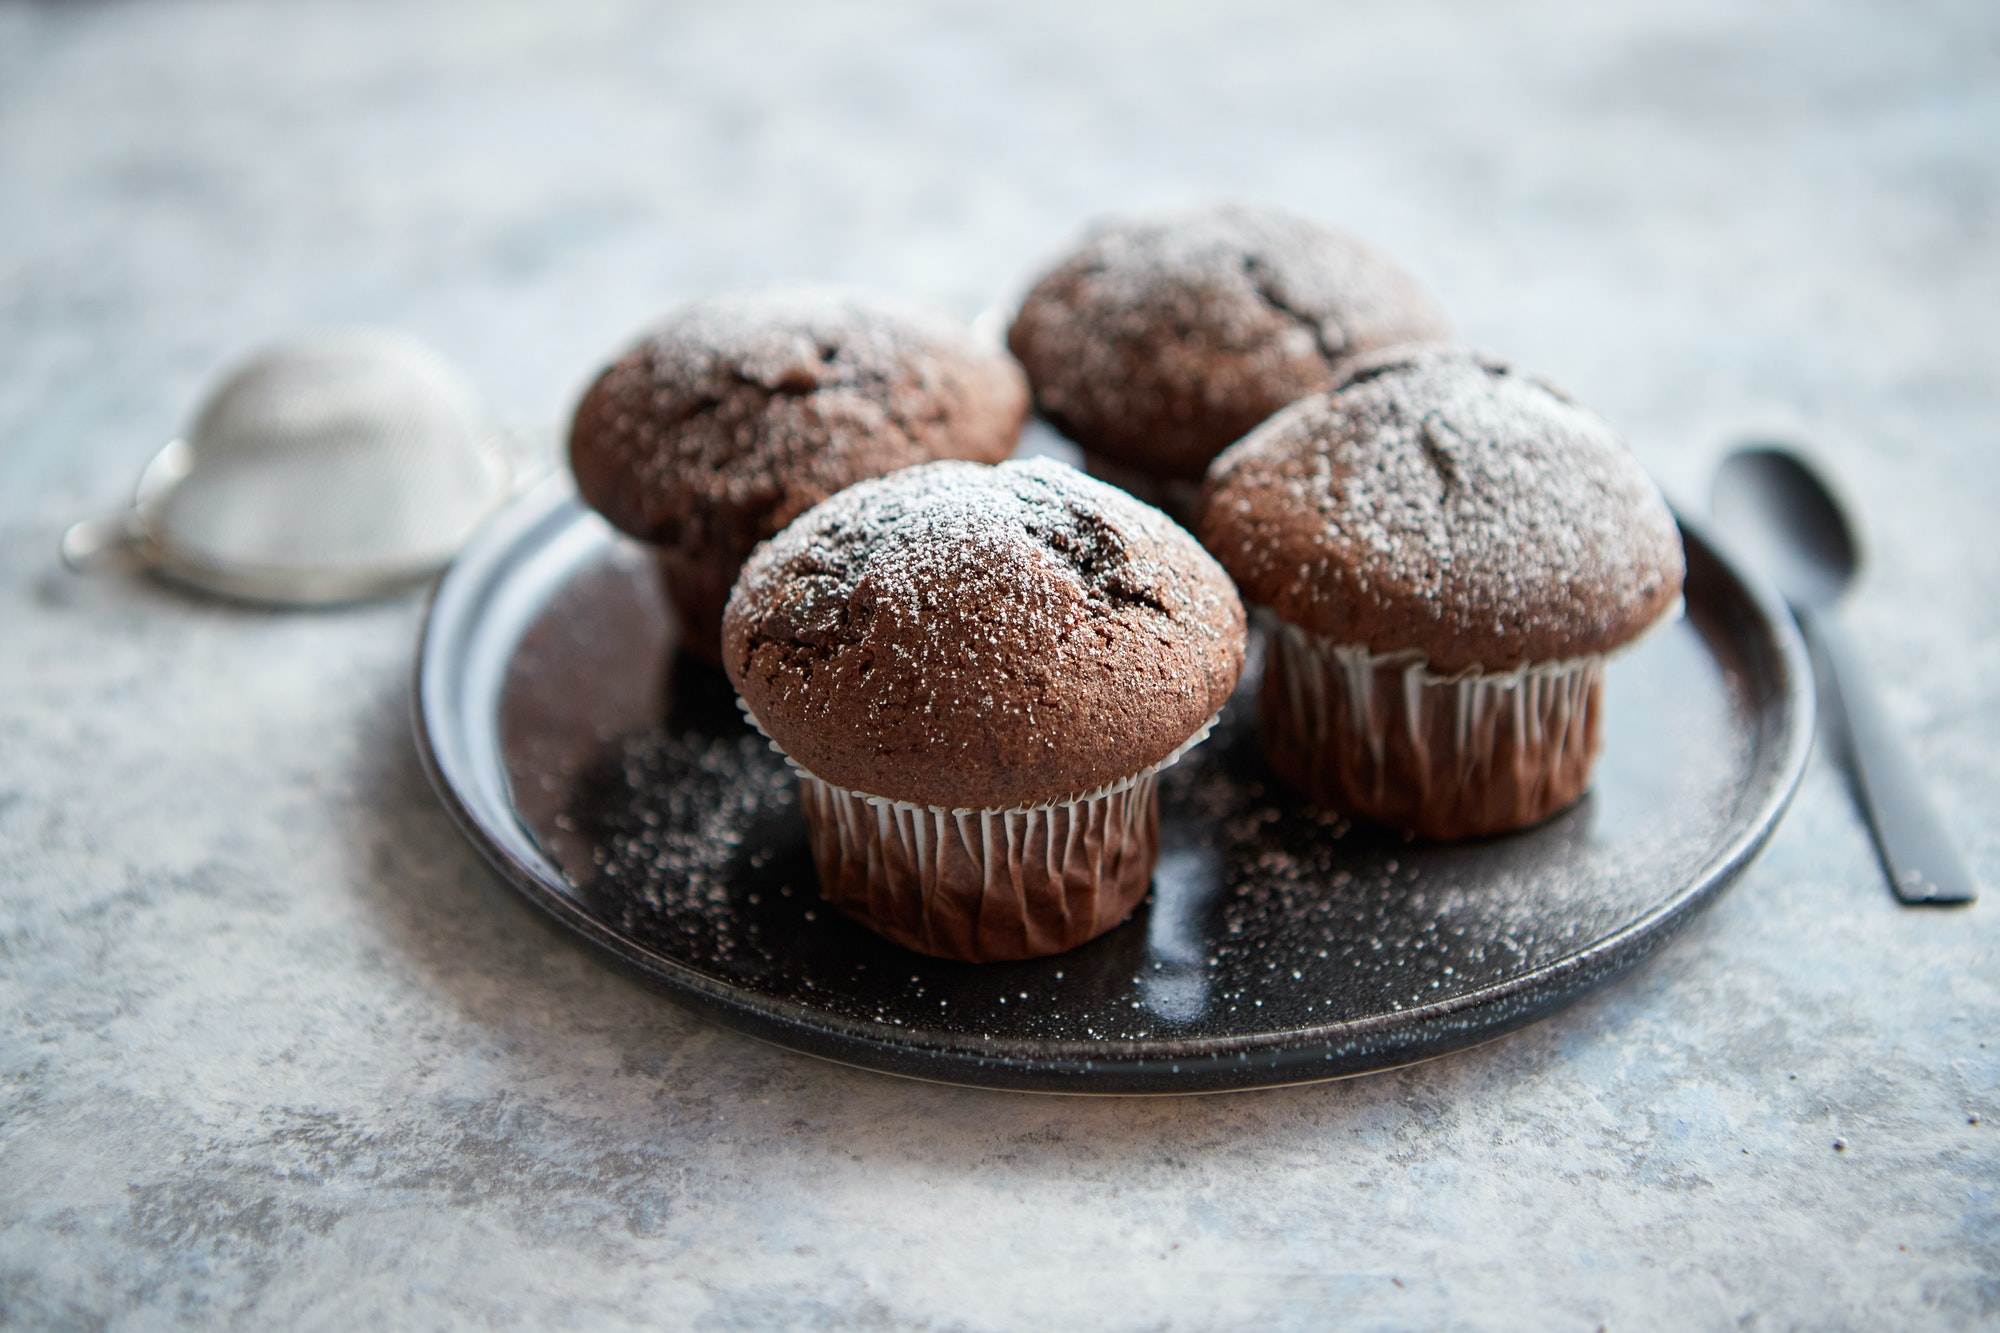 Fresh and tasty chocolate muffins served on plate